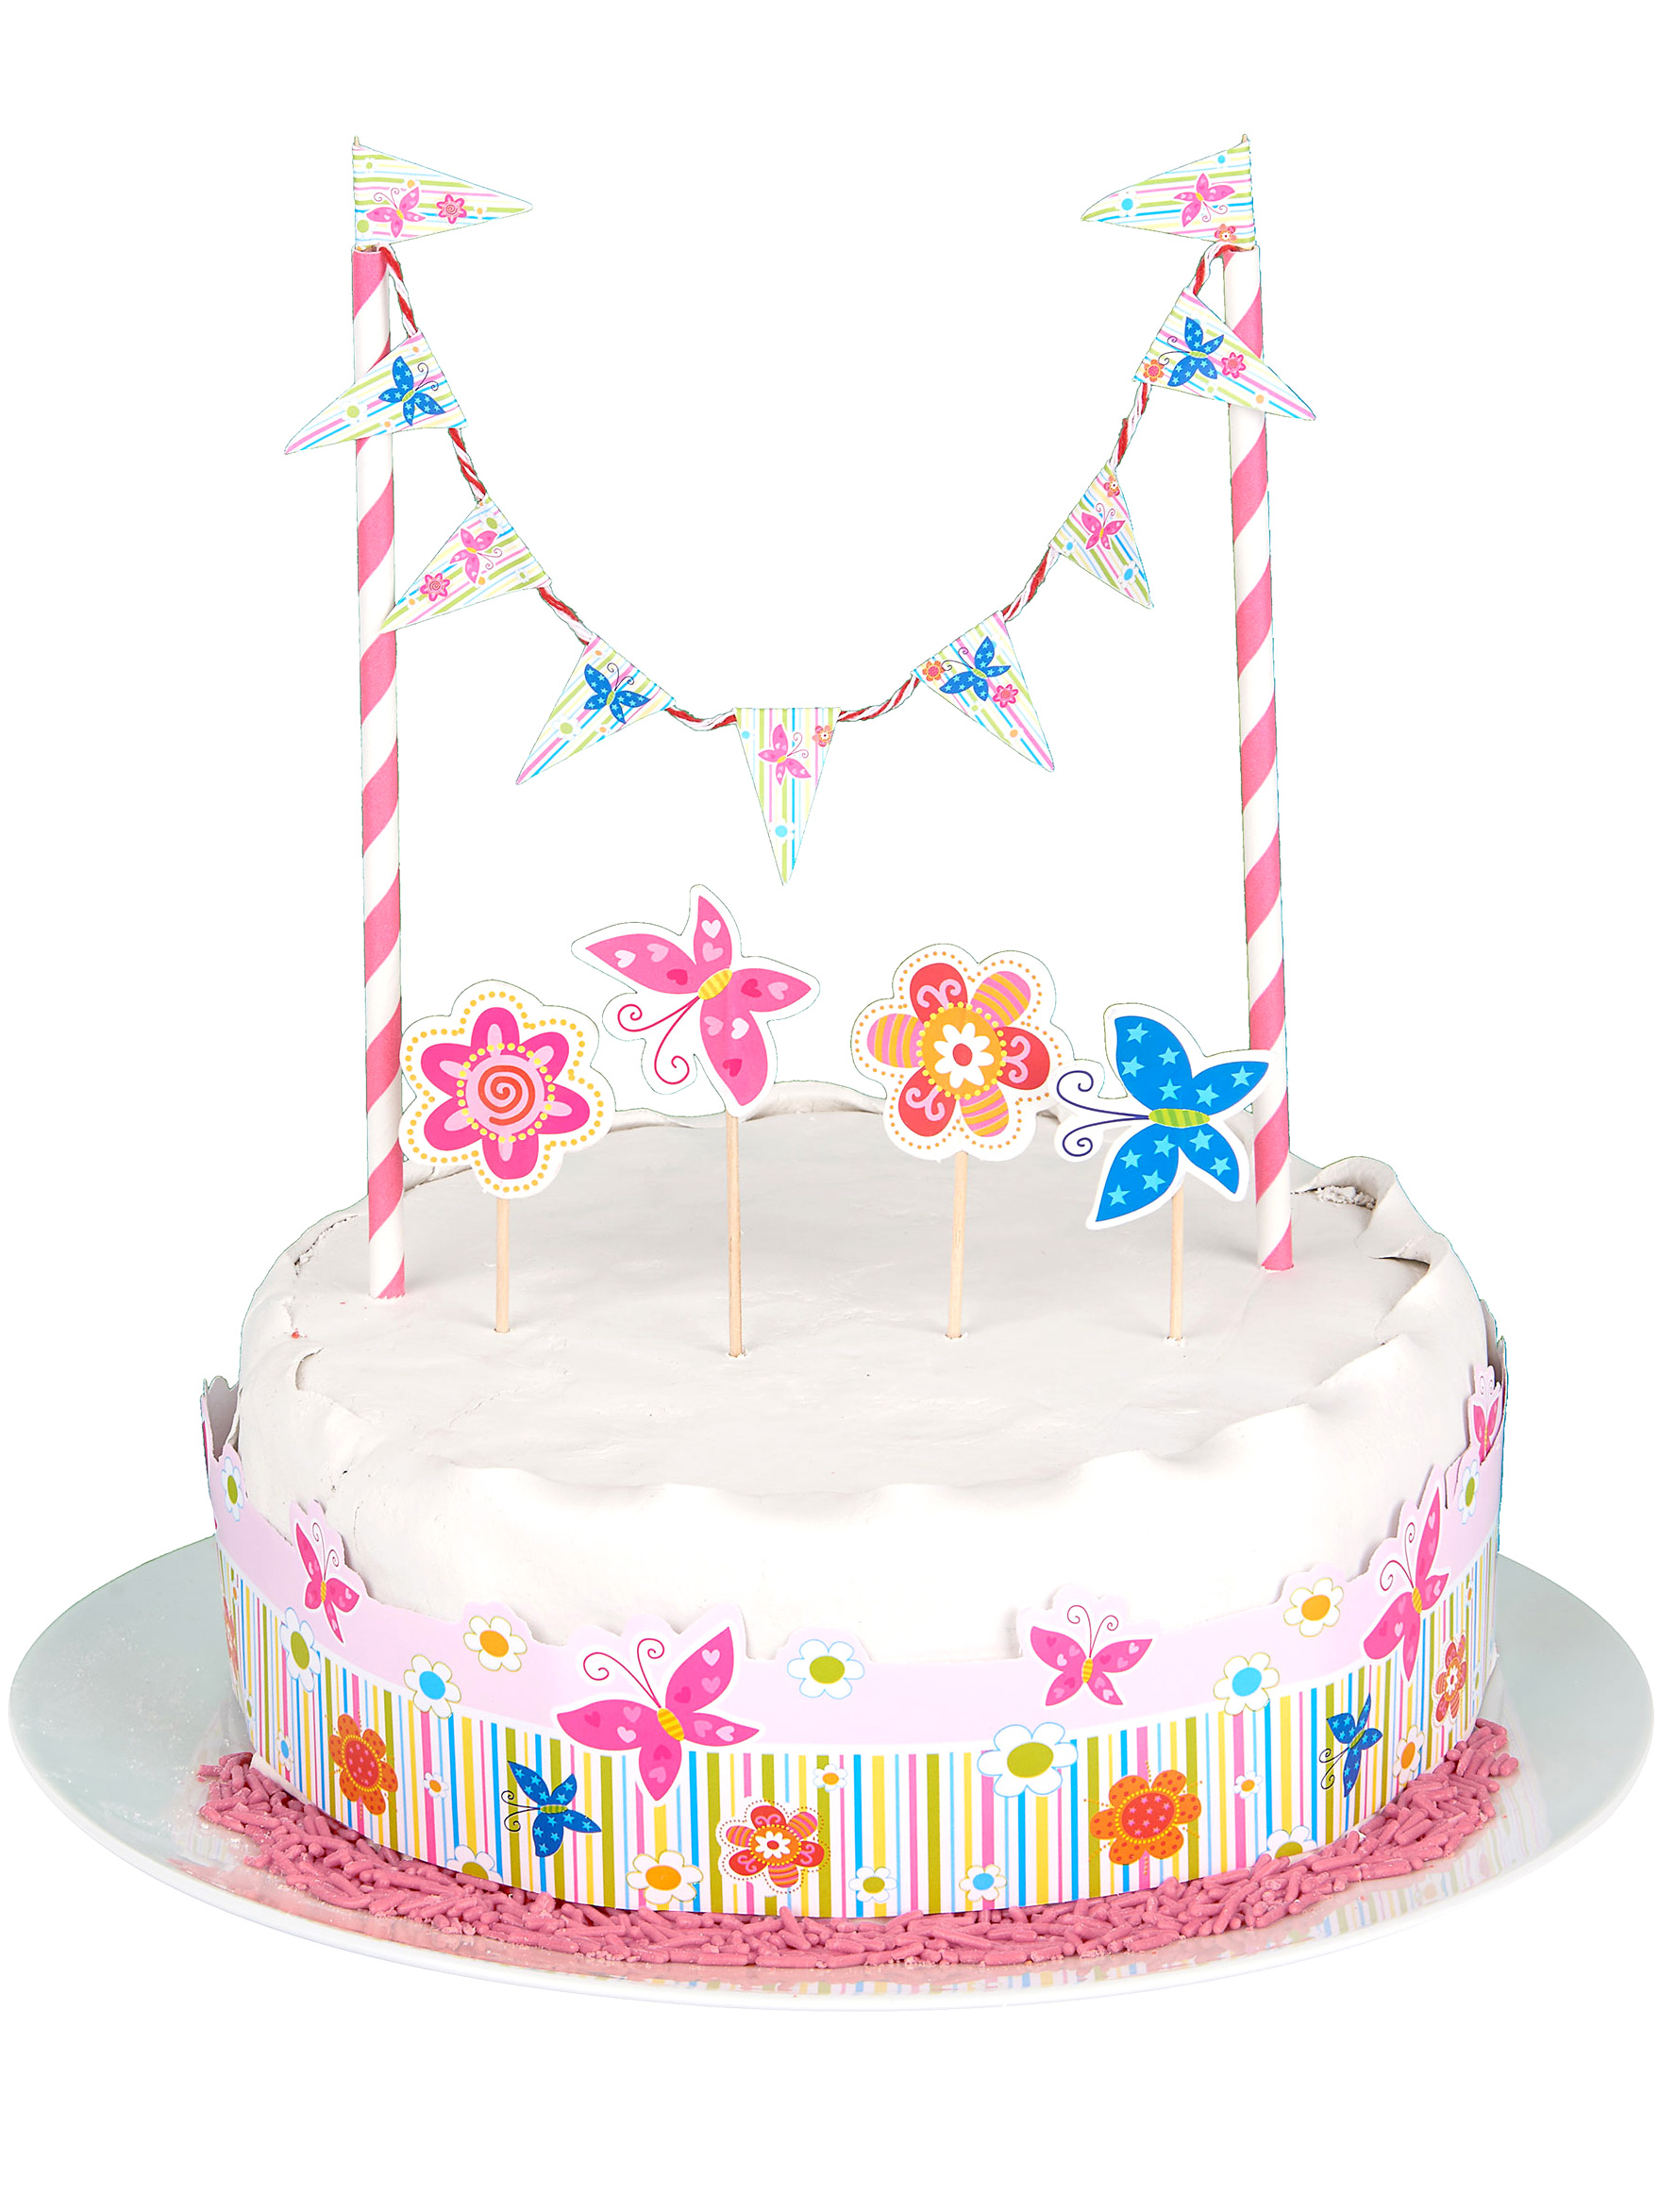 Decoration Minnie Gateau Anniversaire Decorazione Per Torte Bambina: Addobbi,e Vestiti Di